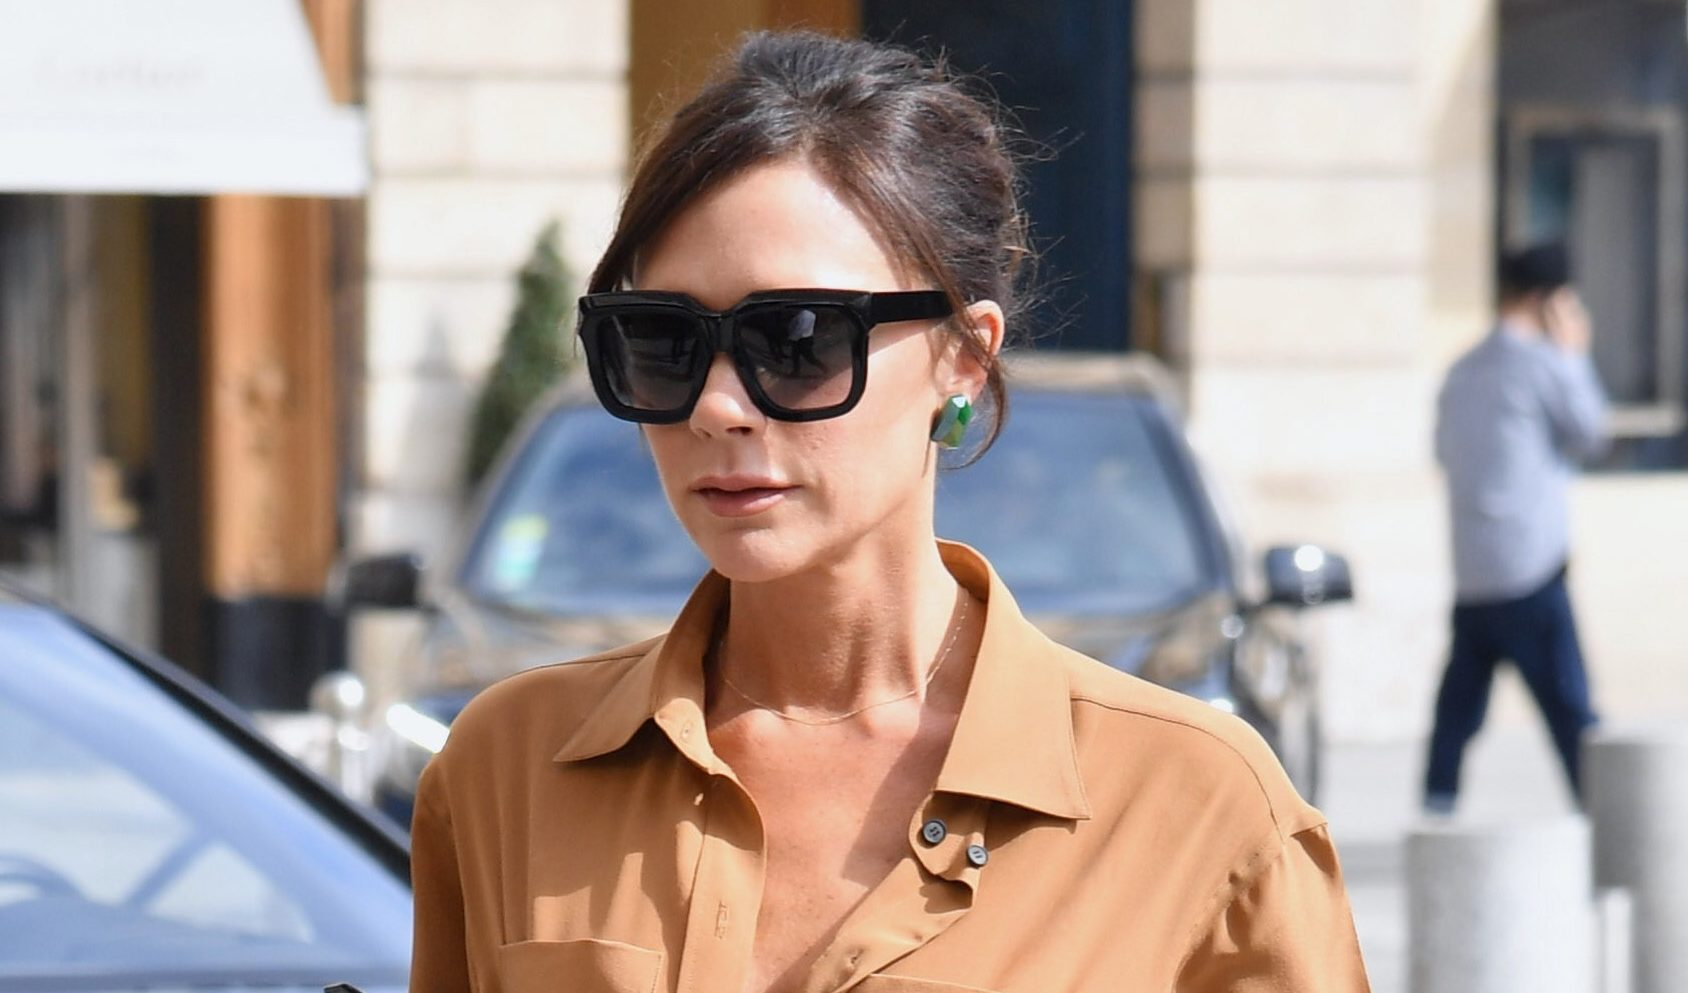 Victoria Beckham reveals REAL reason for Spice Girls meeting